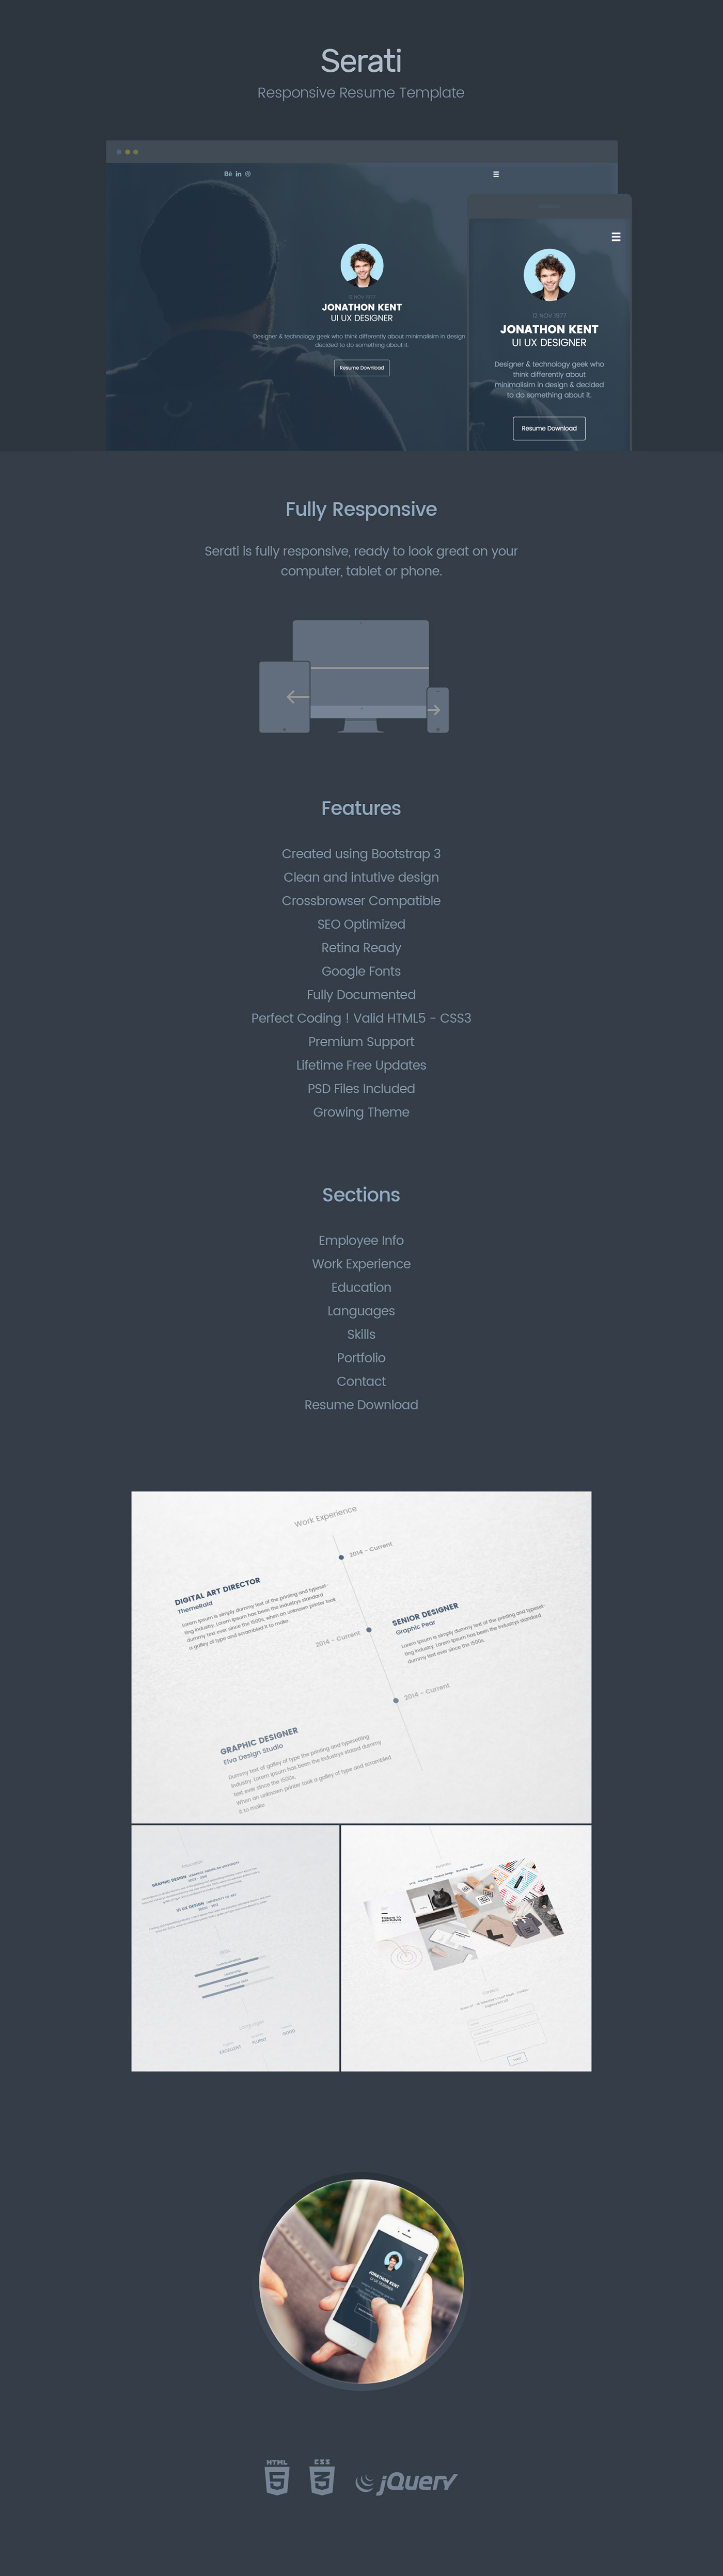 serati free html resume template on behance - Html Resume Template Free